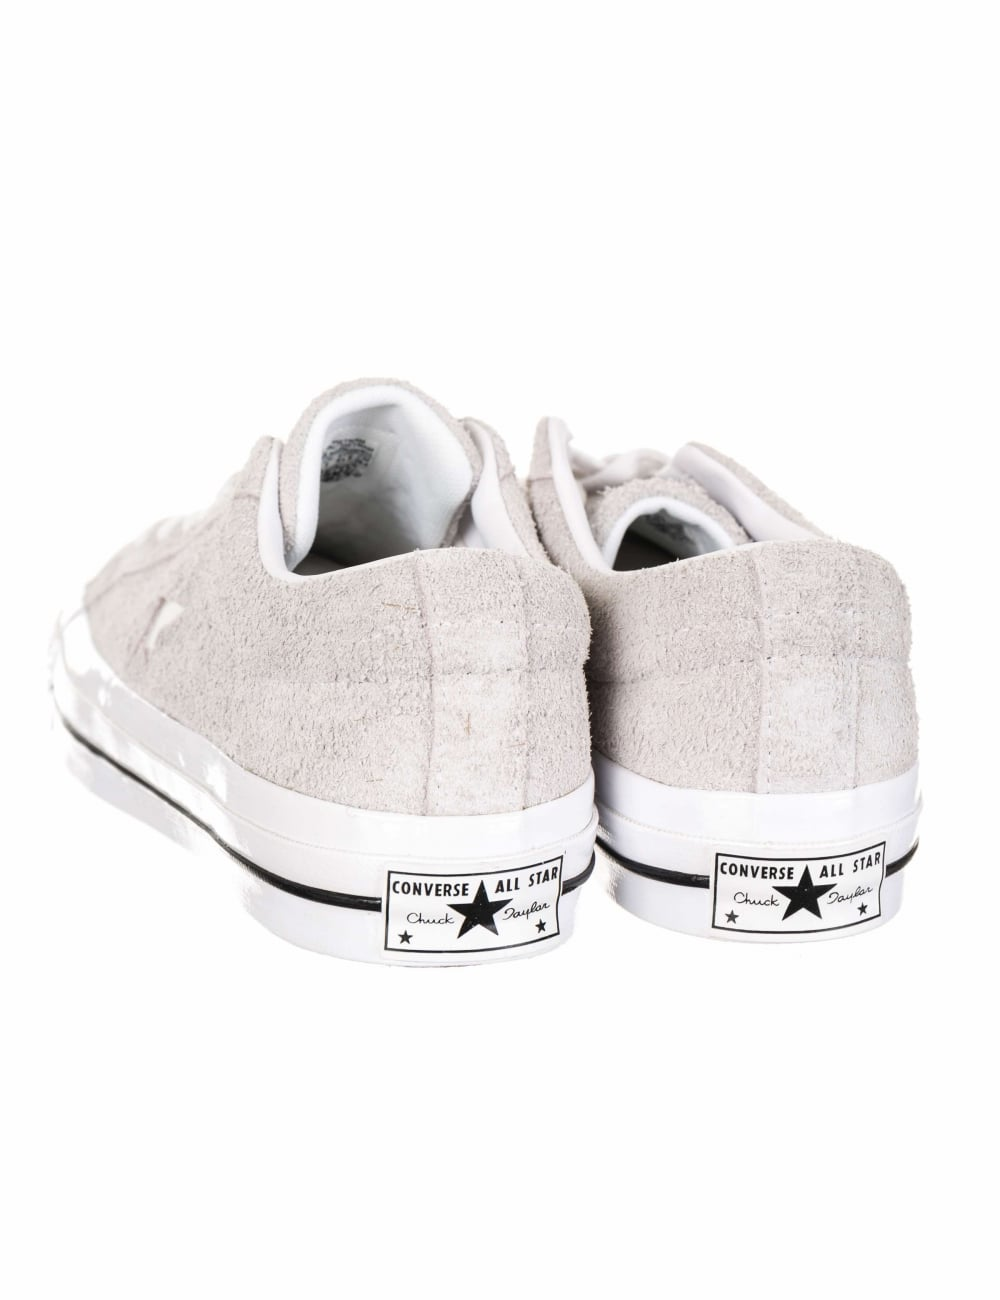 Converse One Star Ox Premium Suede Trainers - Ash Grey White ... 085ba913f2